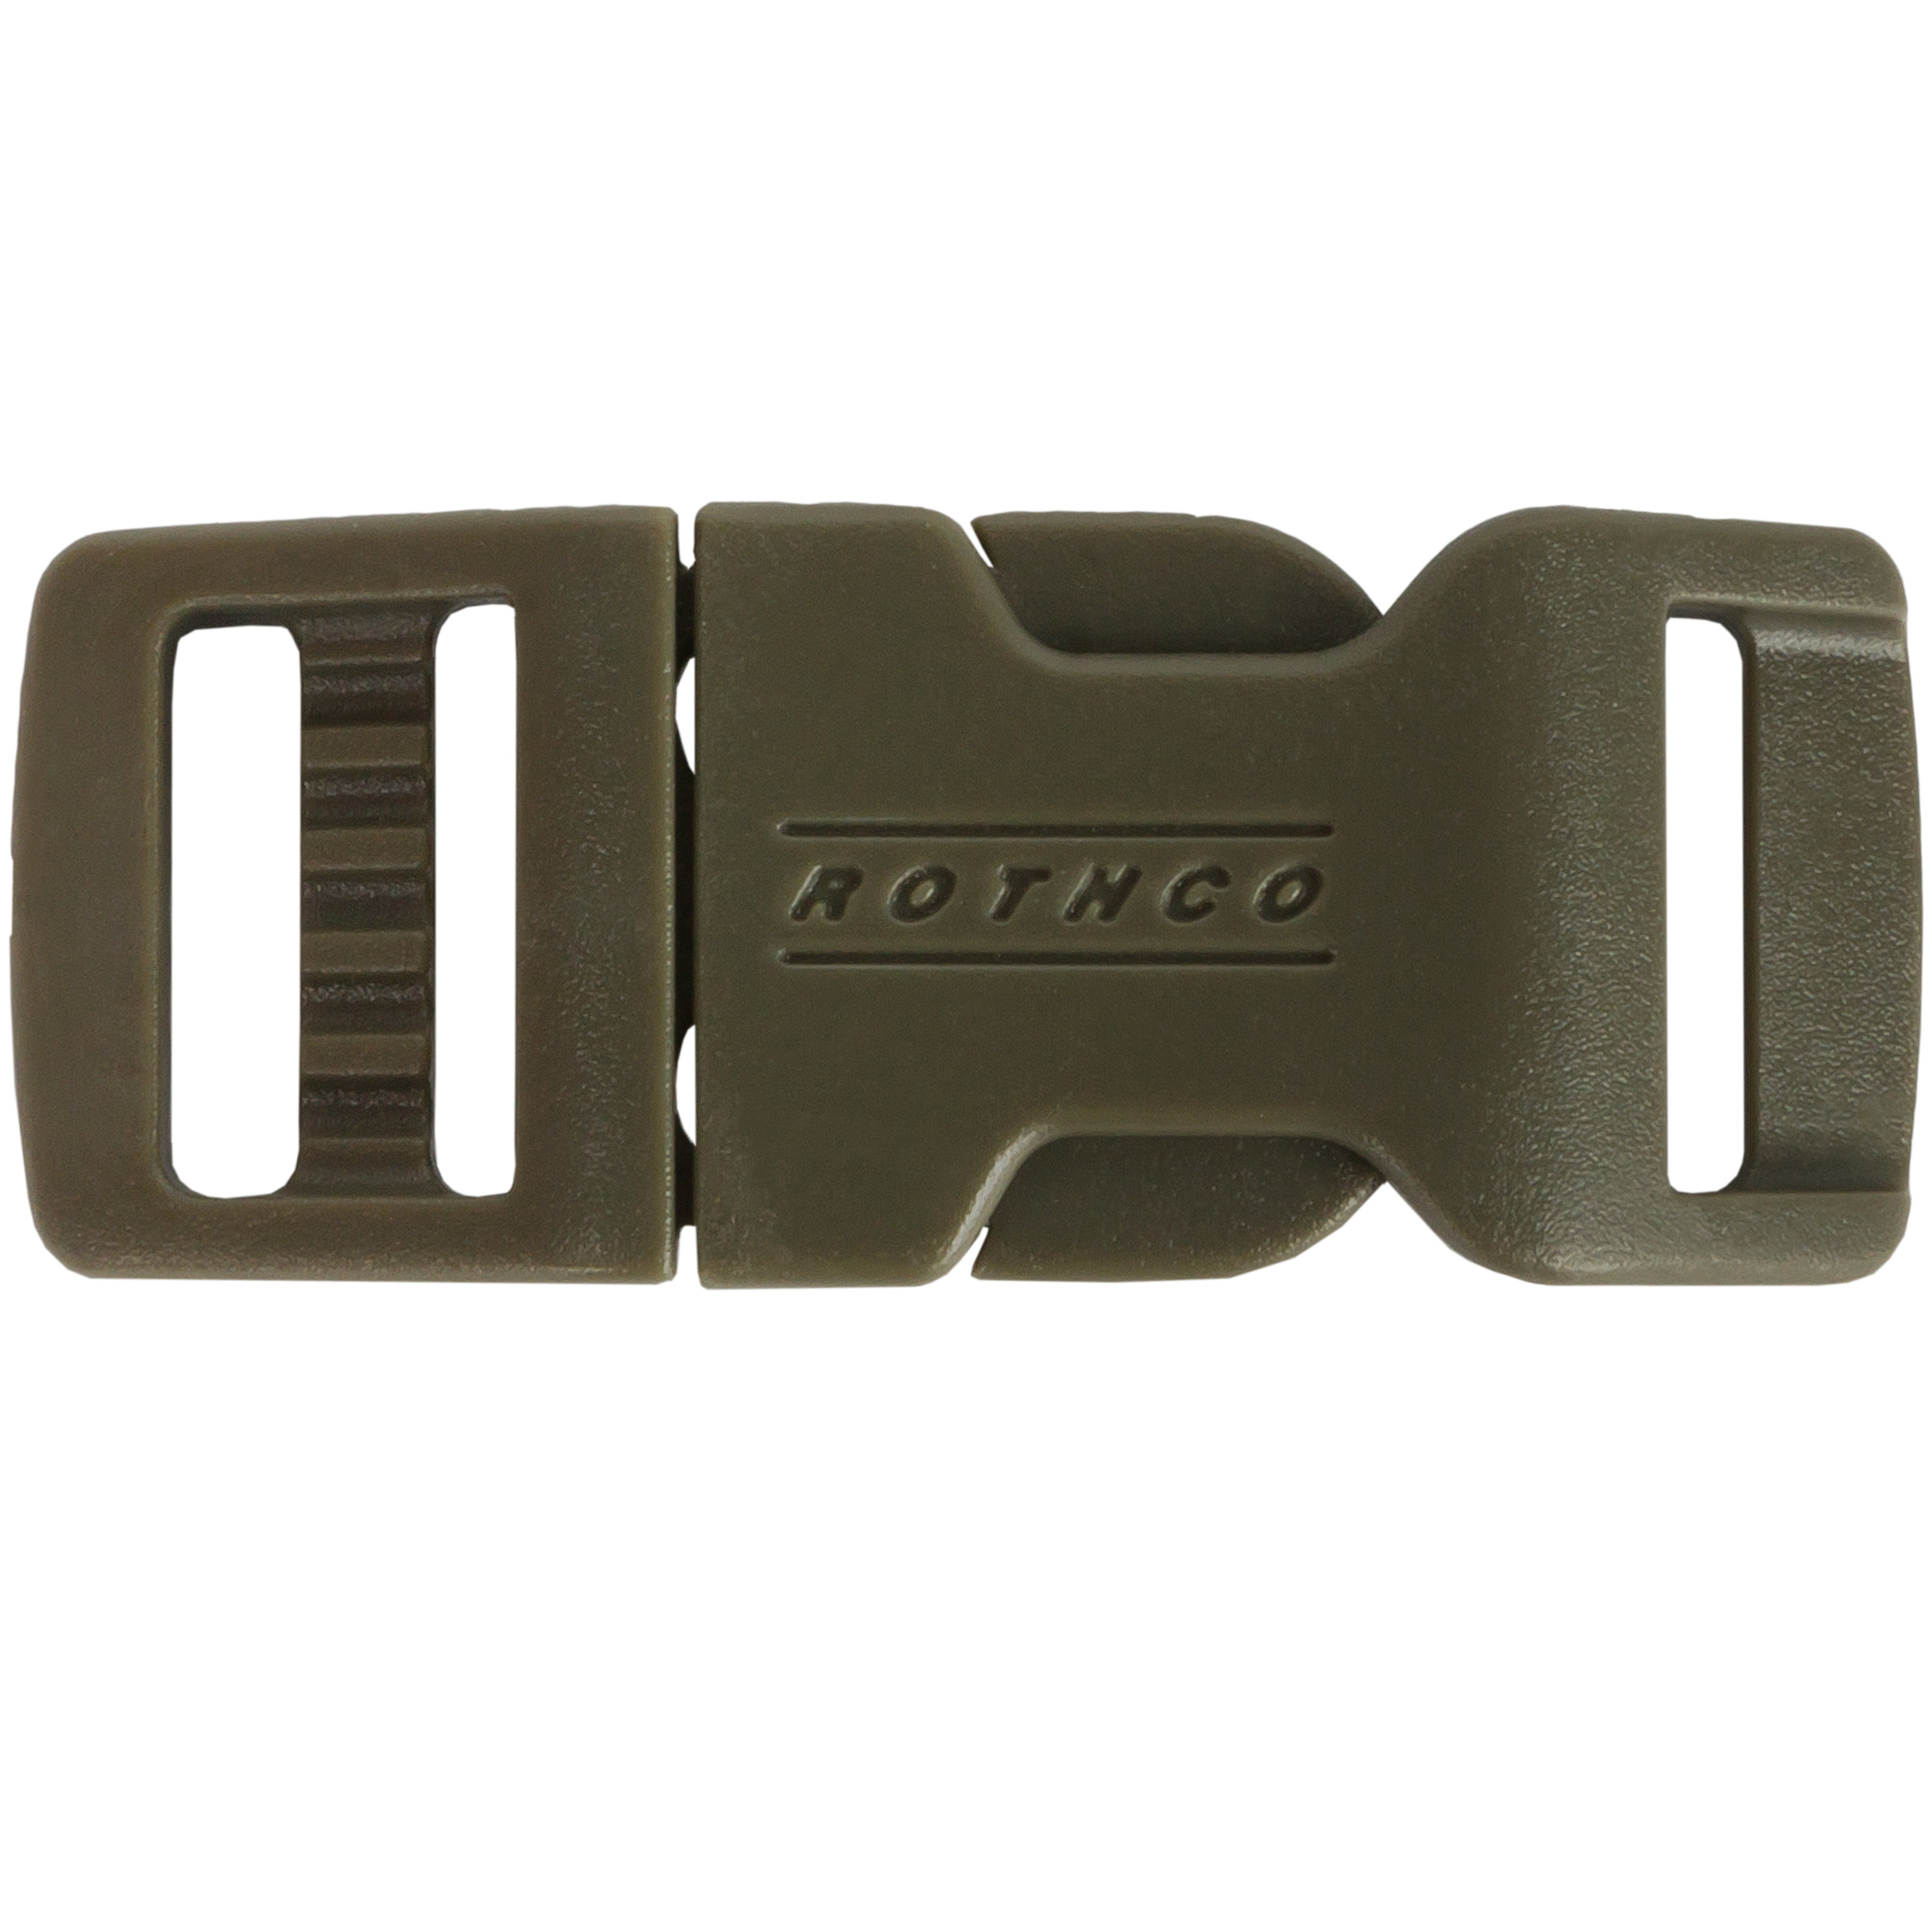 Rothco 1/2 Side Release Clip Closure olive